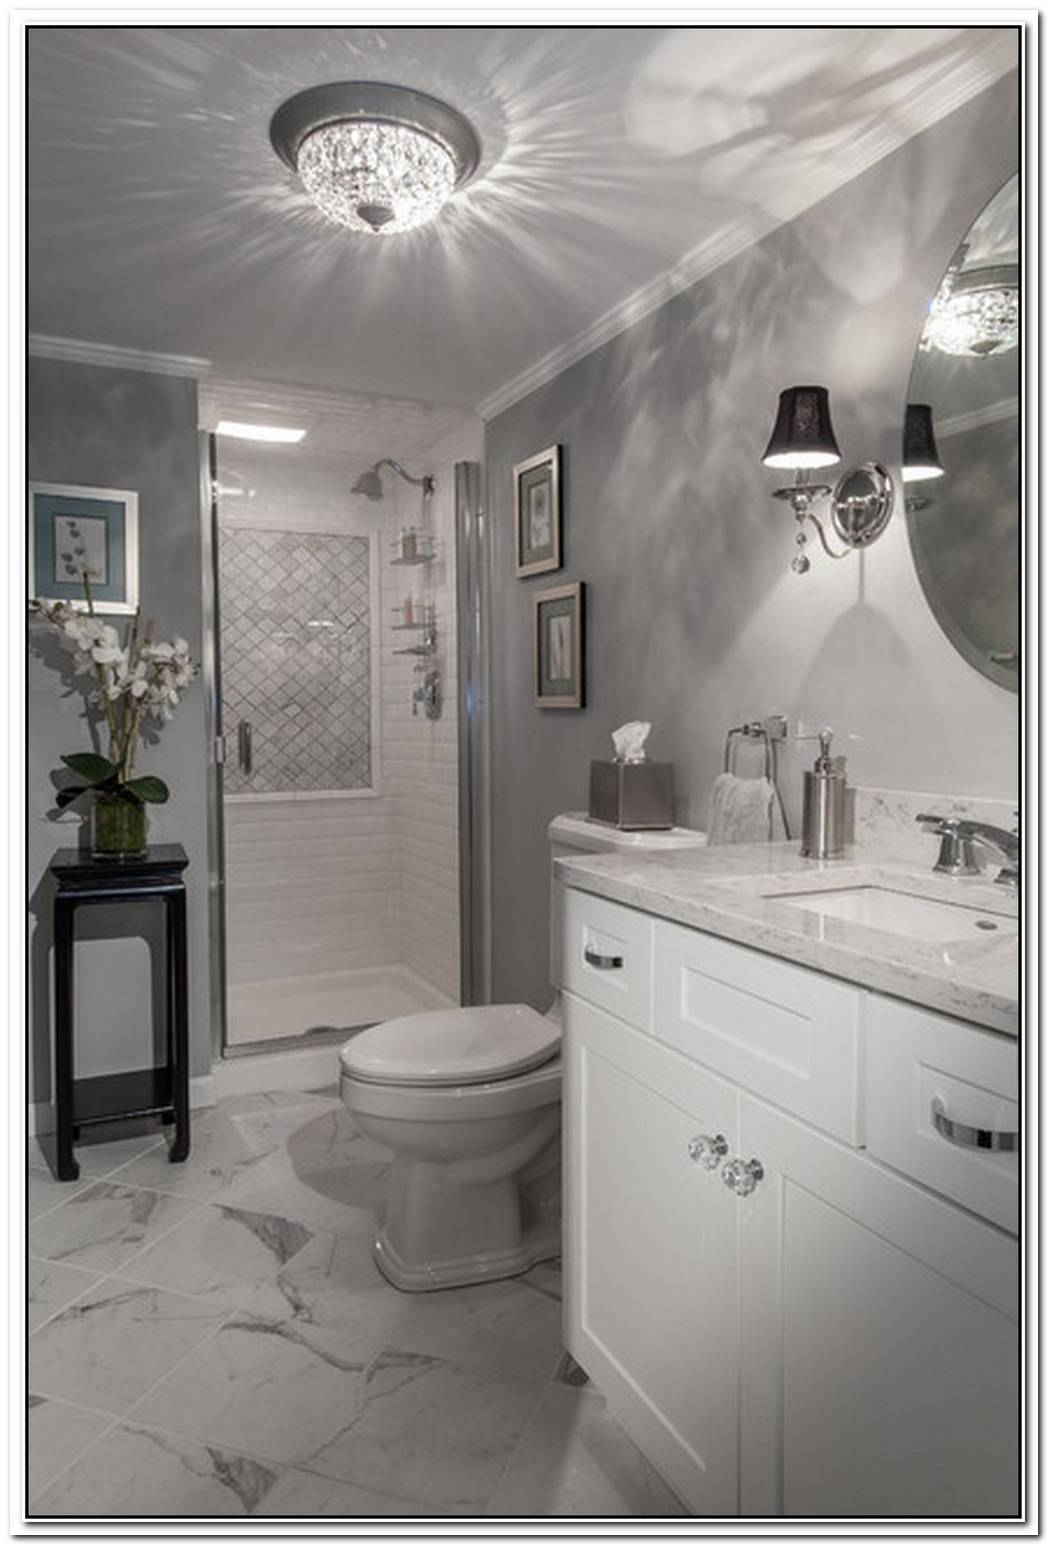 Glam Art Bathroom